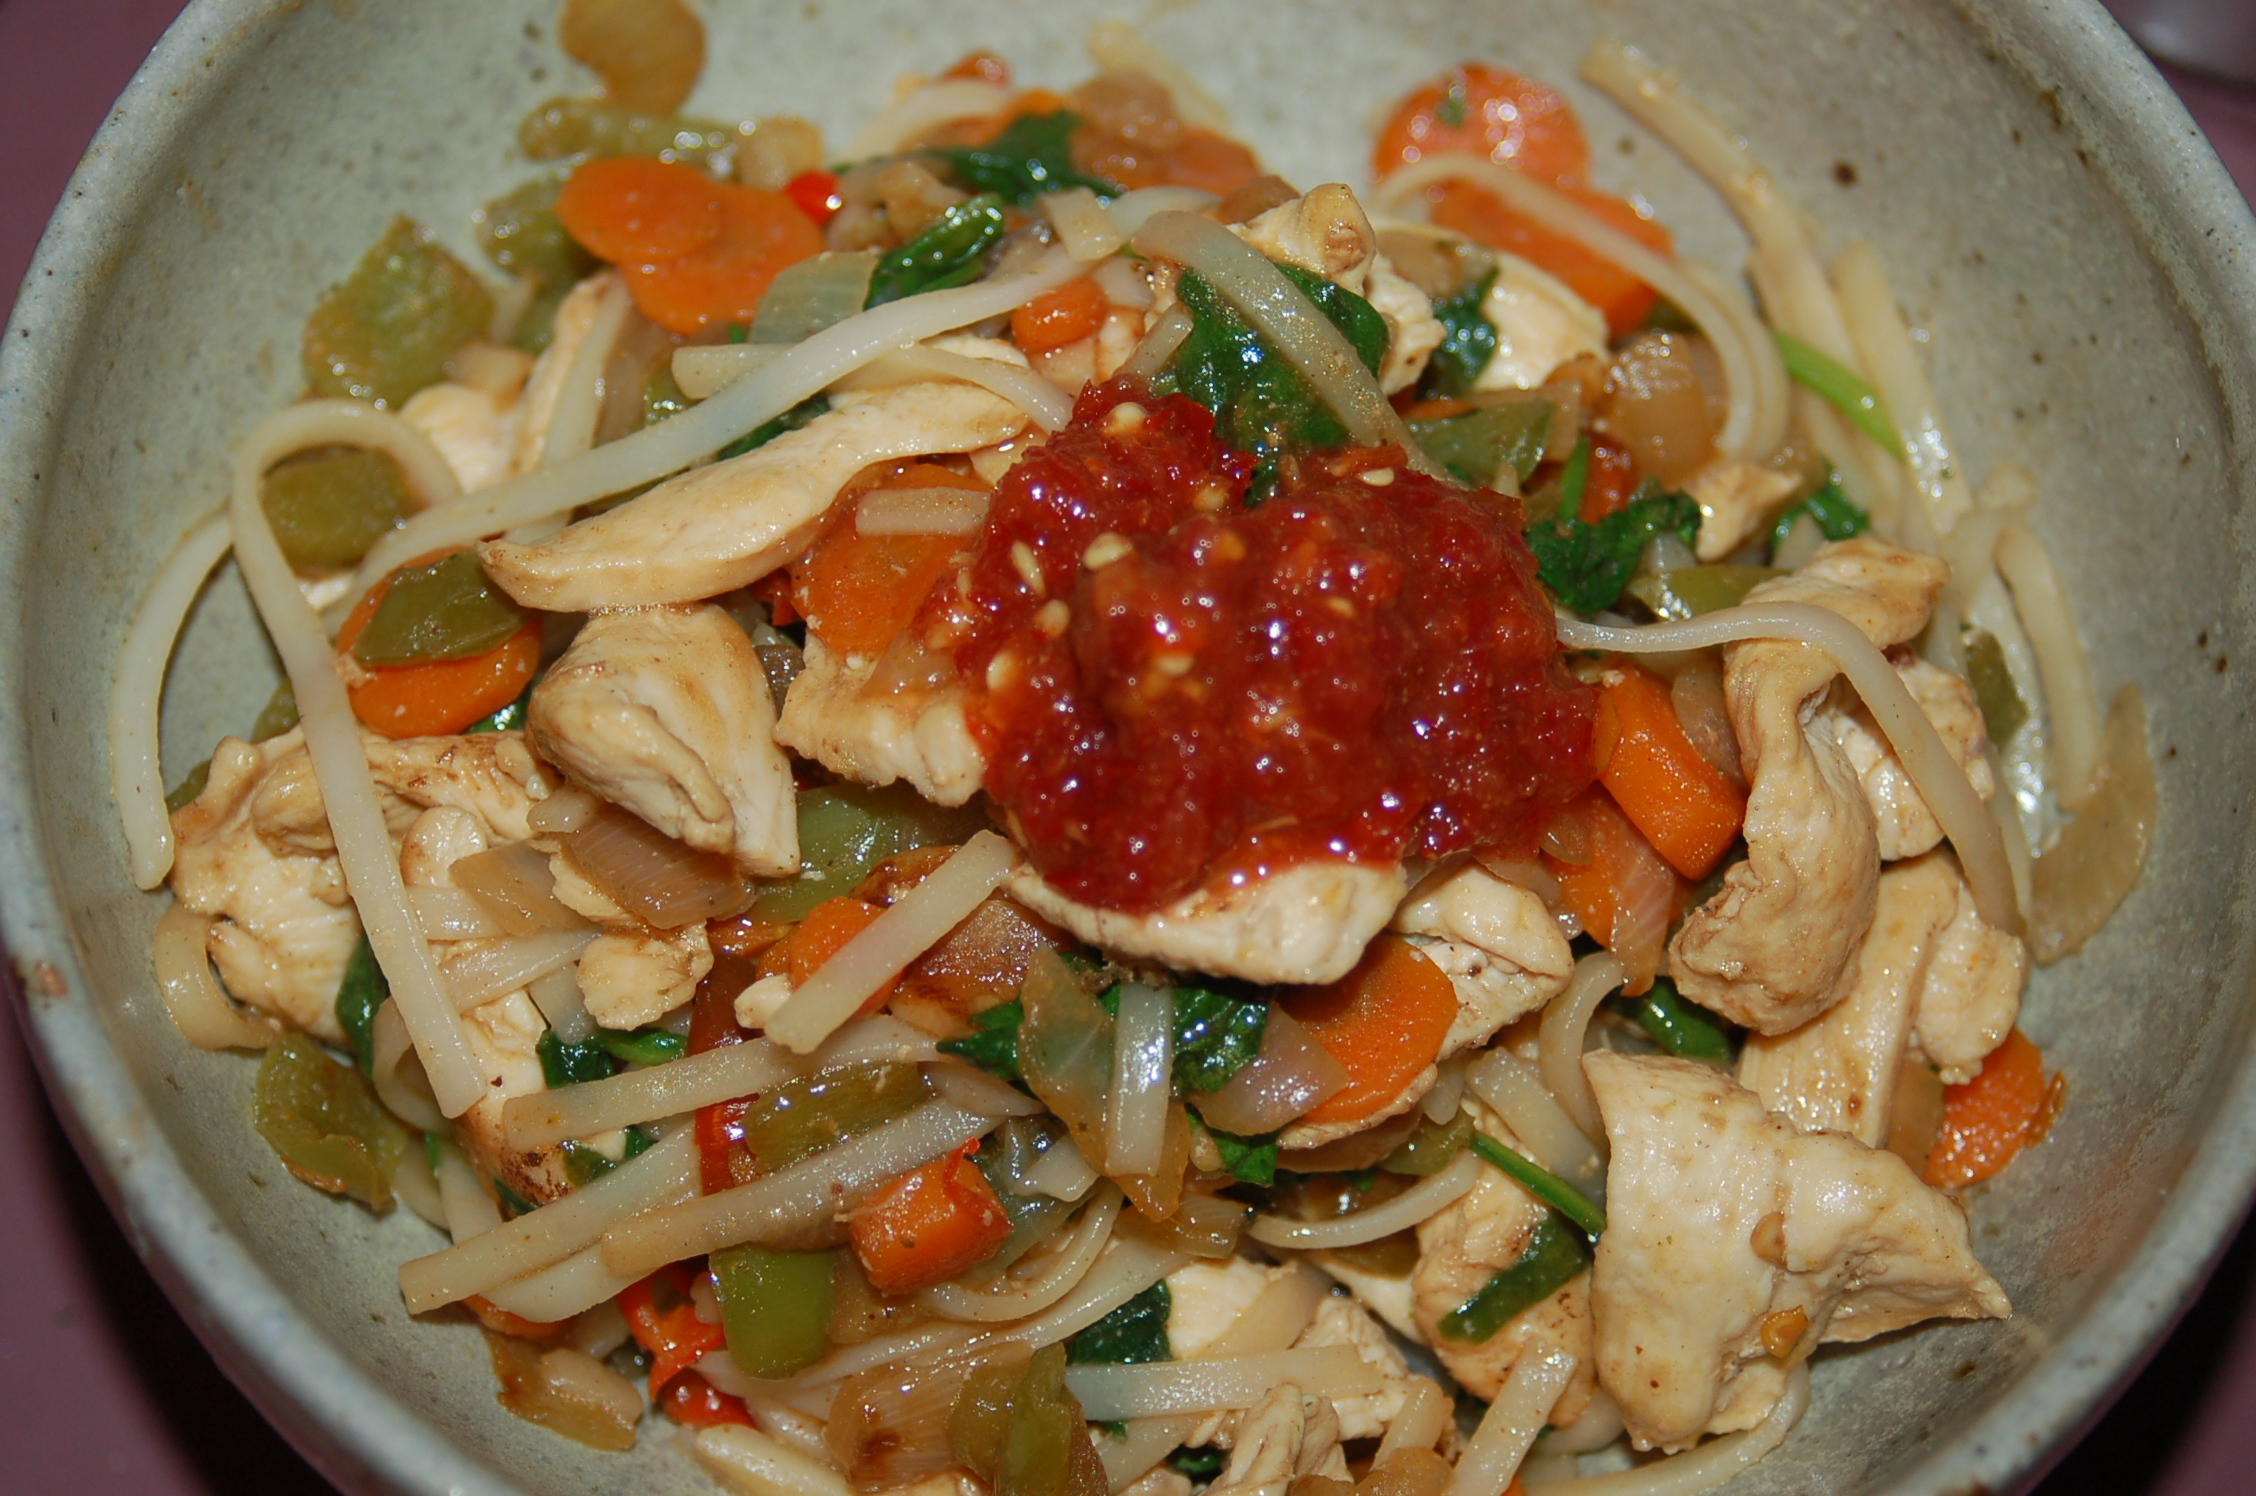 Garlic Chicken Stir Fry With Noodles The Best Rice Noodle Stir-fry